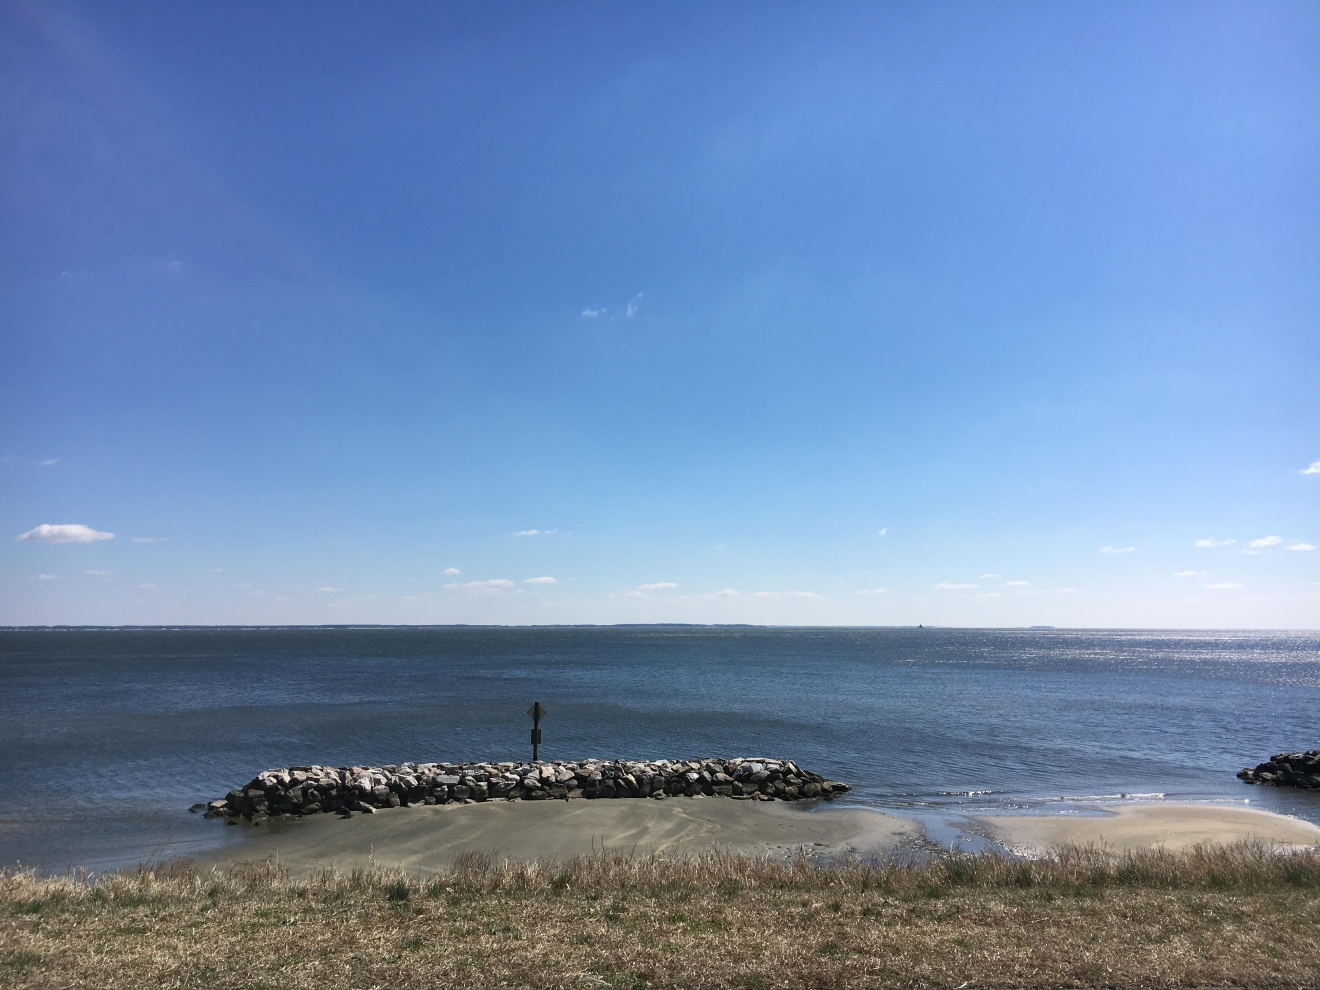 Trump's proposed budget could critically undermine efforts to clean up the Chesapeake Bay (WBFF)